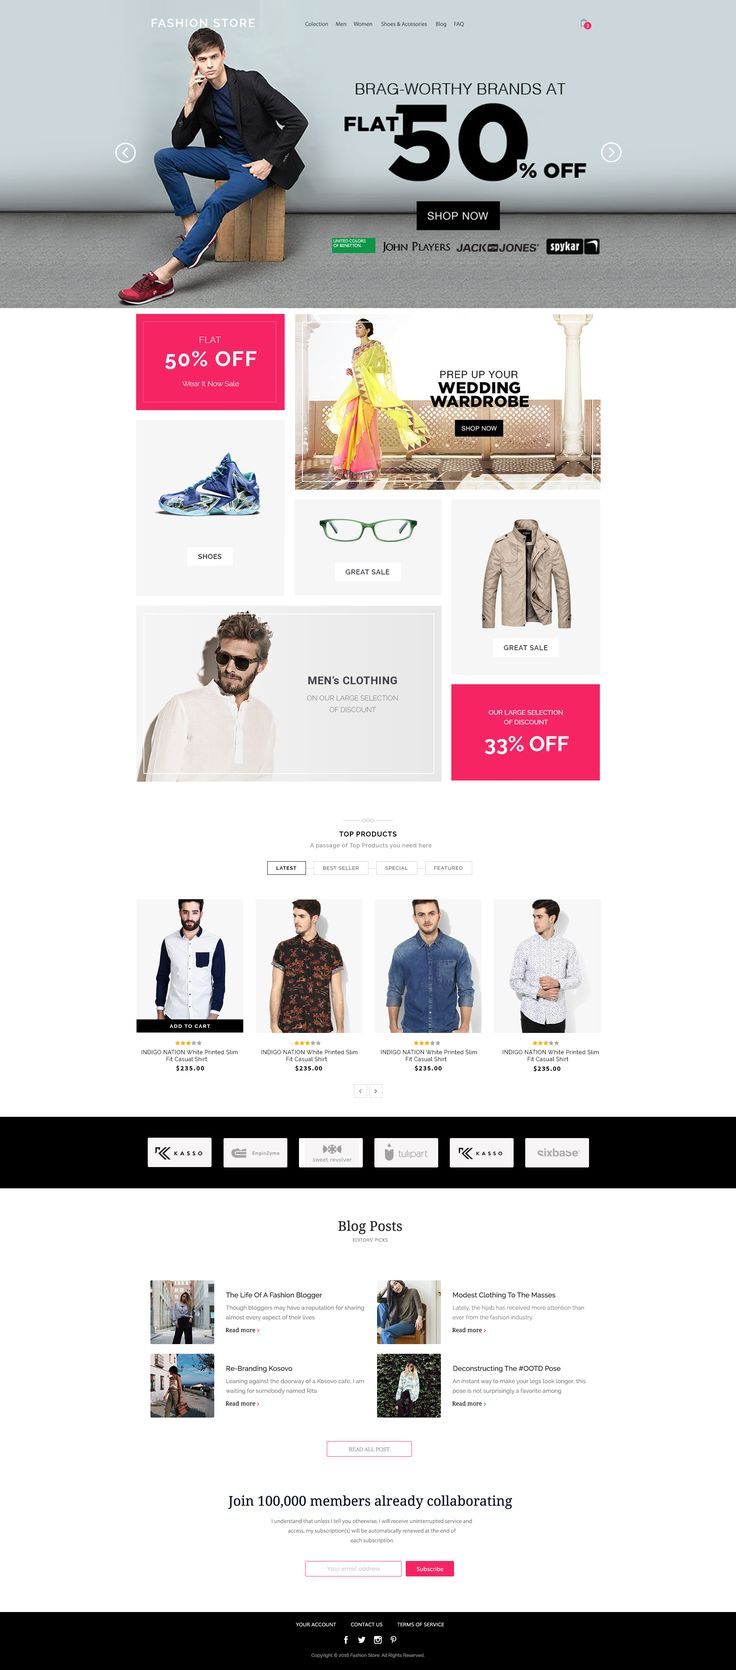 #Planning to #launch an #ecommerce #store? Order your first #ecommerce #Website and get 25% off. Contact us at service@wordpraxs.com or Skype with us on service.wordpraxs